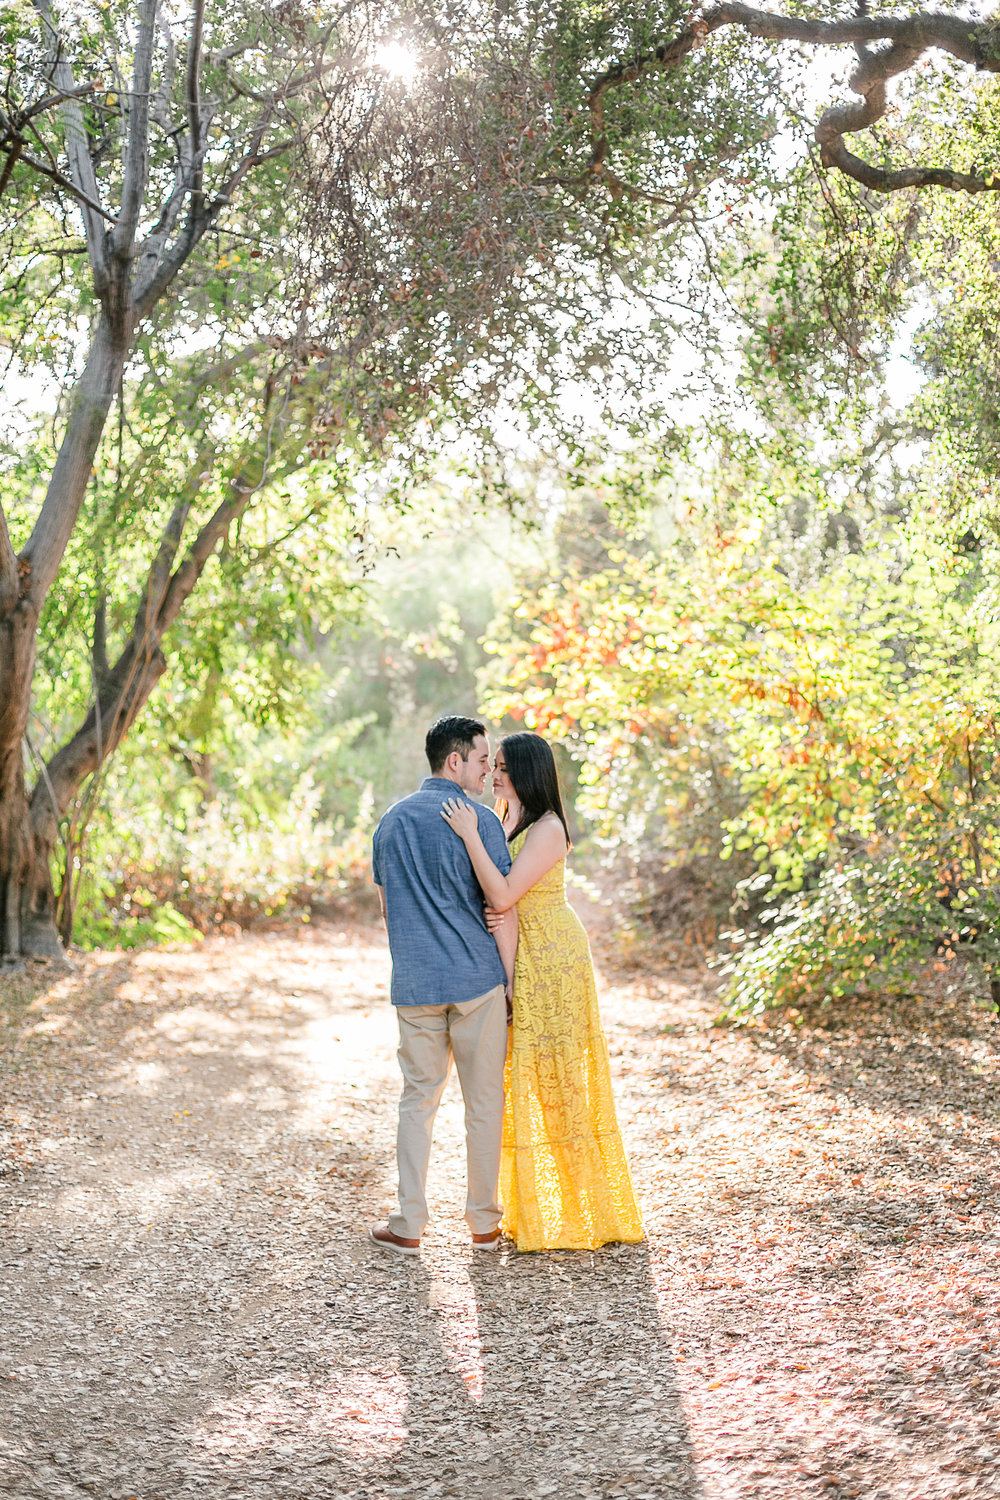 Jen_and_Derek_LA_Arborteum_and_Pasadena_Engagement_Session-7.jpg